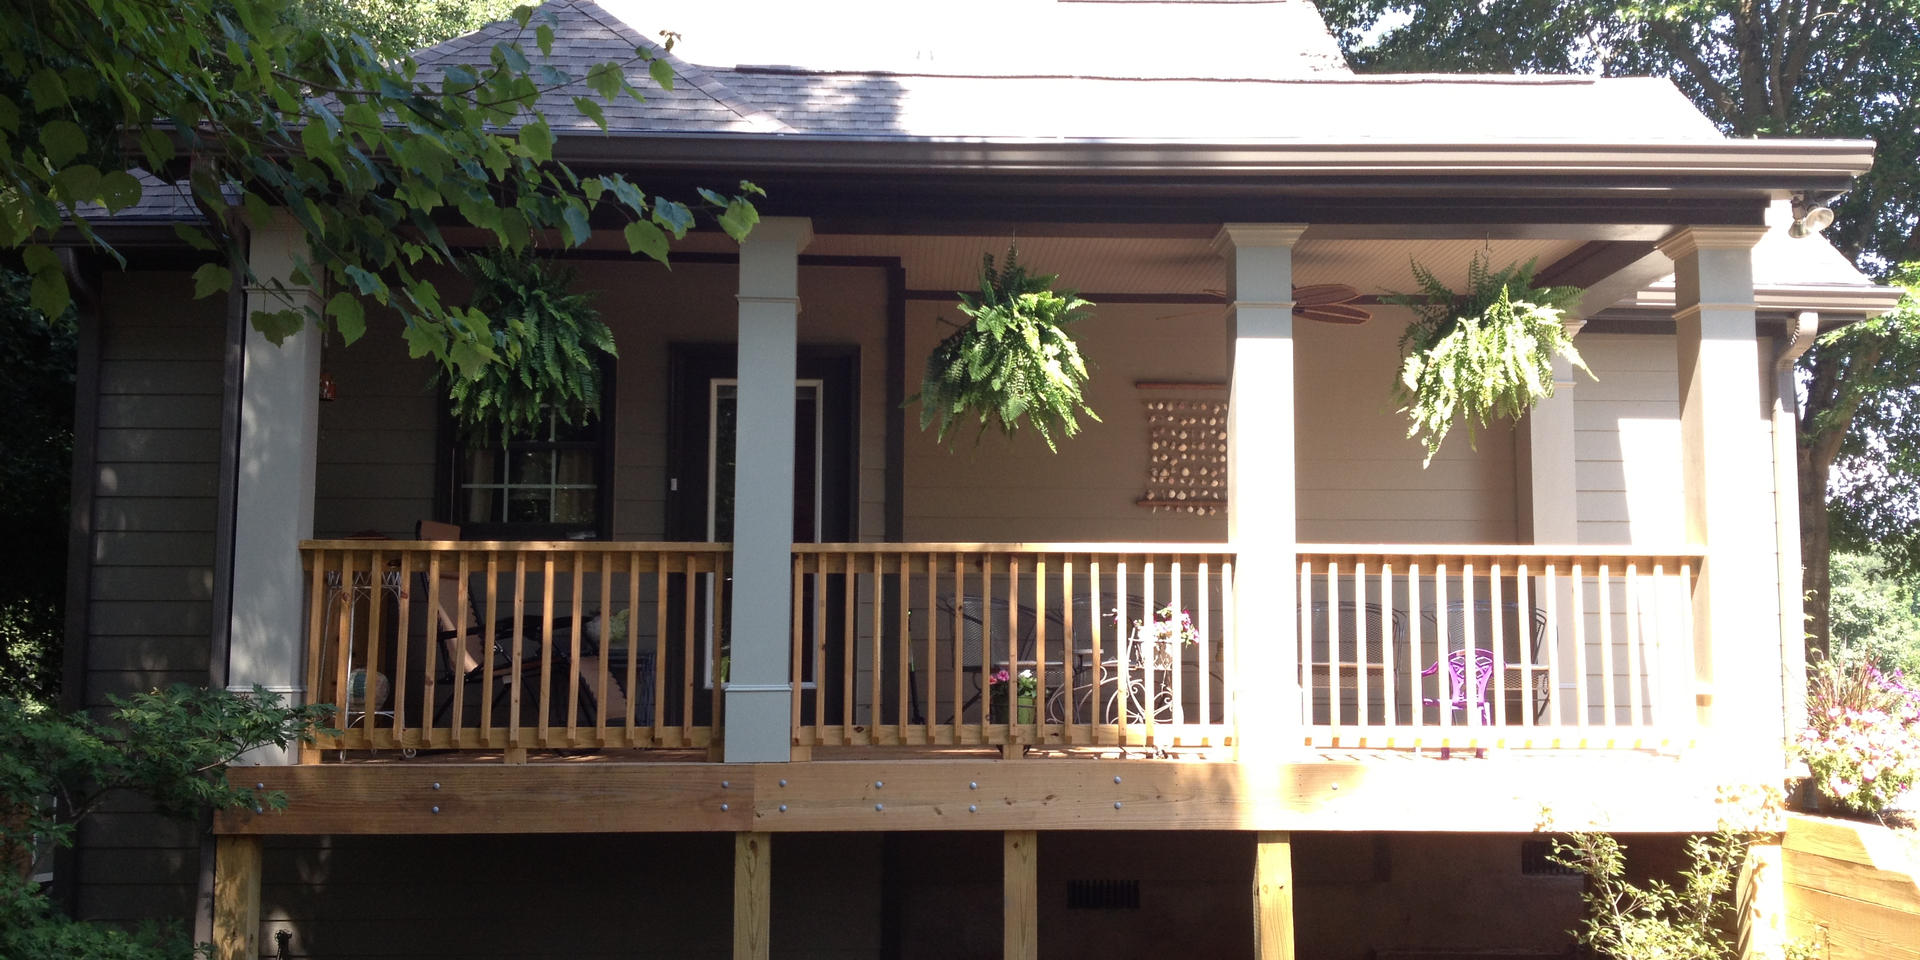 Southern Style sitting porch